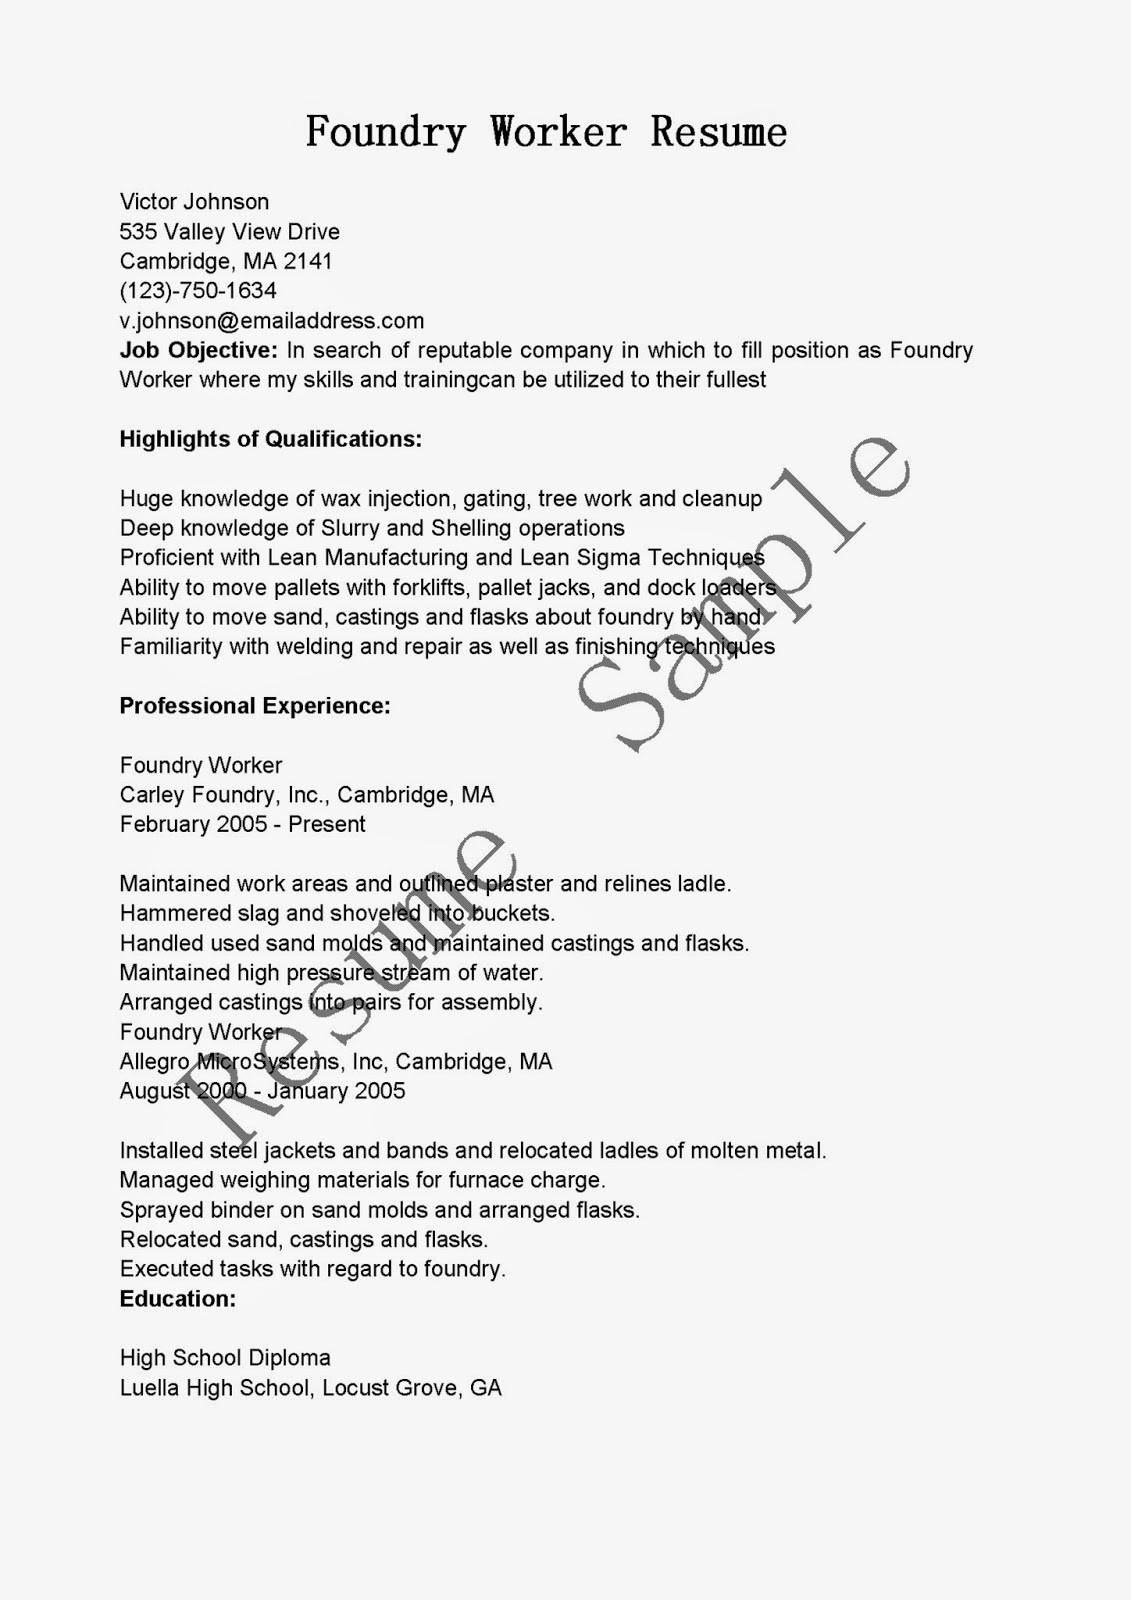 resume samples  foundry worker resume sample